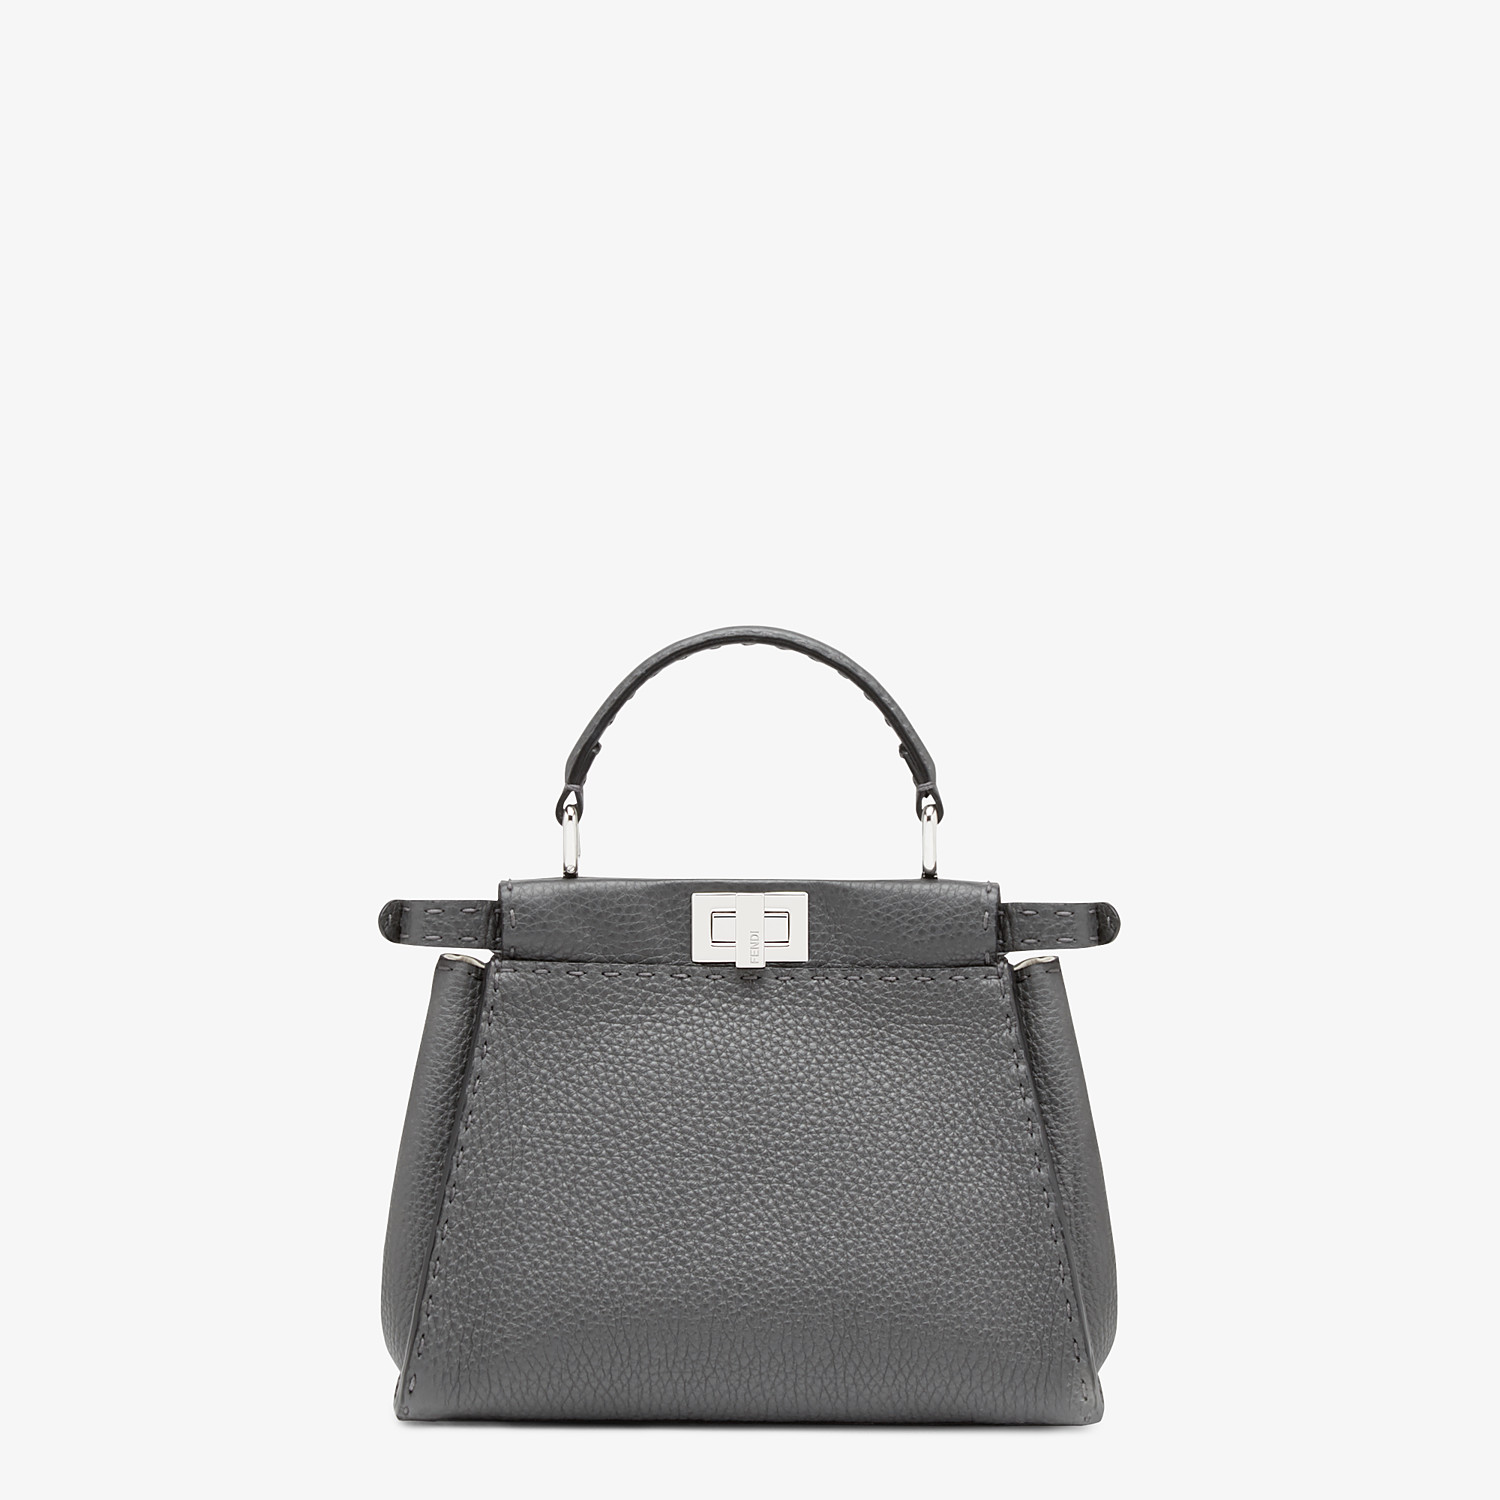 FENDI PEEKABOO ICONIC MINI - Asphalt-grey Selleria handbag - view 3 detail